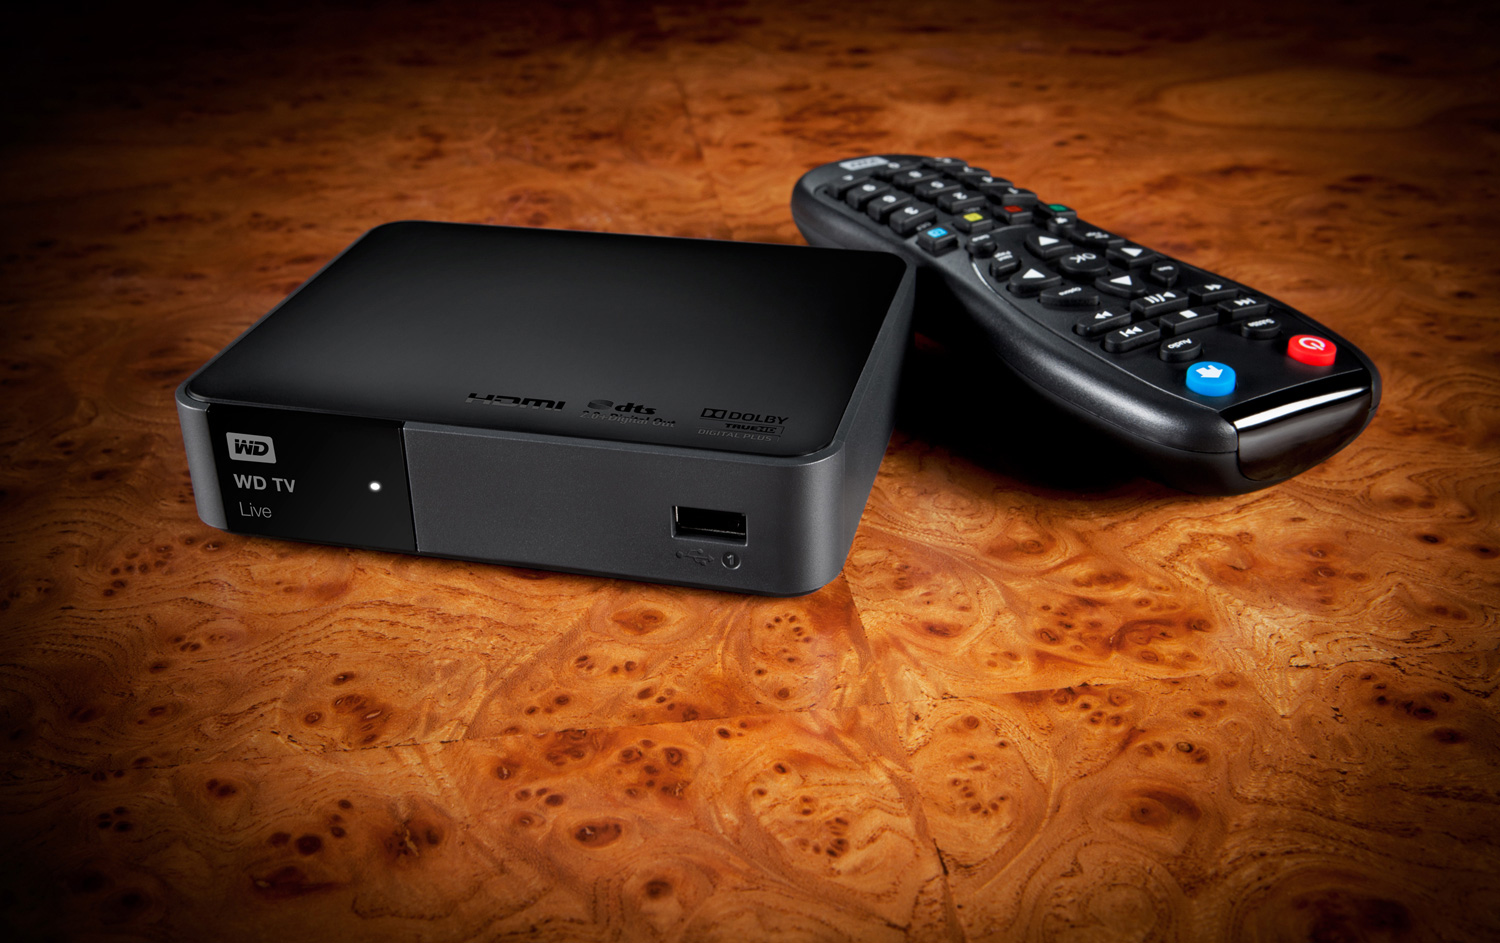 Wd Tv Live Media Player Offers Wireless Streaming And